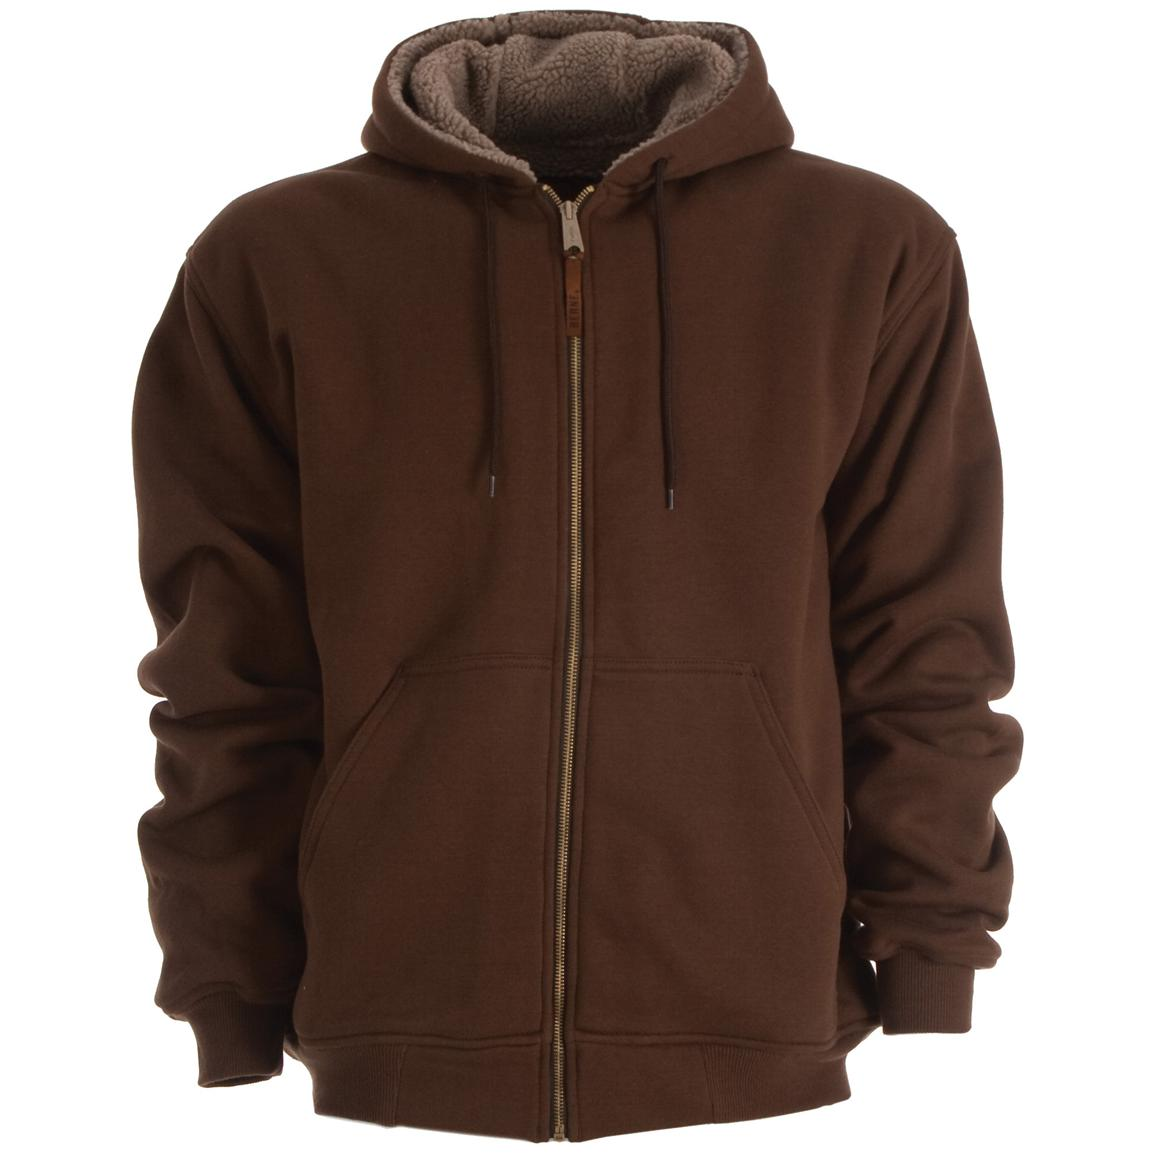 Sherpa - lined Zip Hoodie from Berne® - 221606, Sweatshirts ...